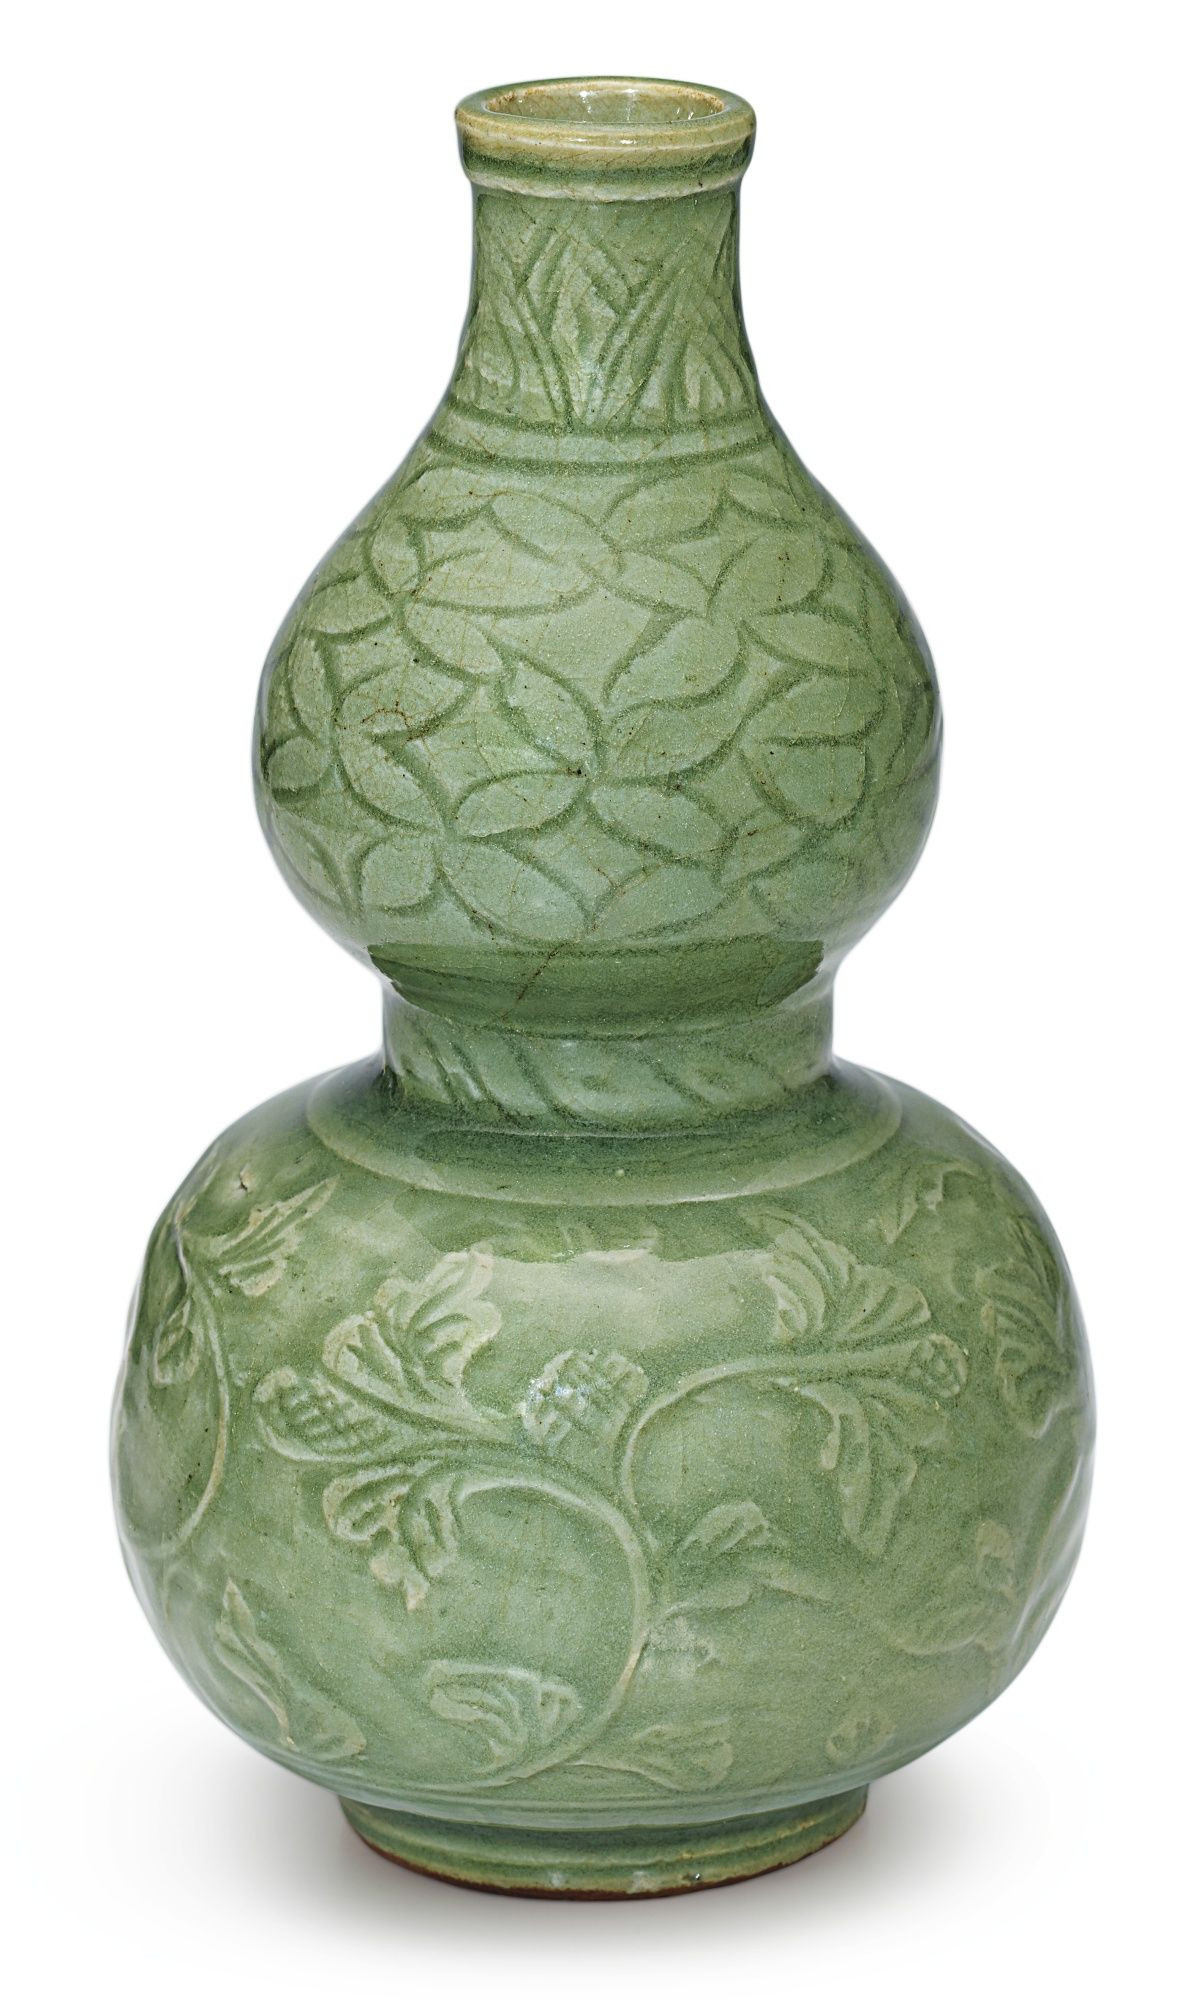 13 Cute Double Gourd Vase 2021 free download double gourd vase of a longquan celadon peony double gourd vase ming dynasty 16th within a longquan celadon peony double gourd vase ming dynasty 16th 17th